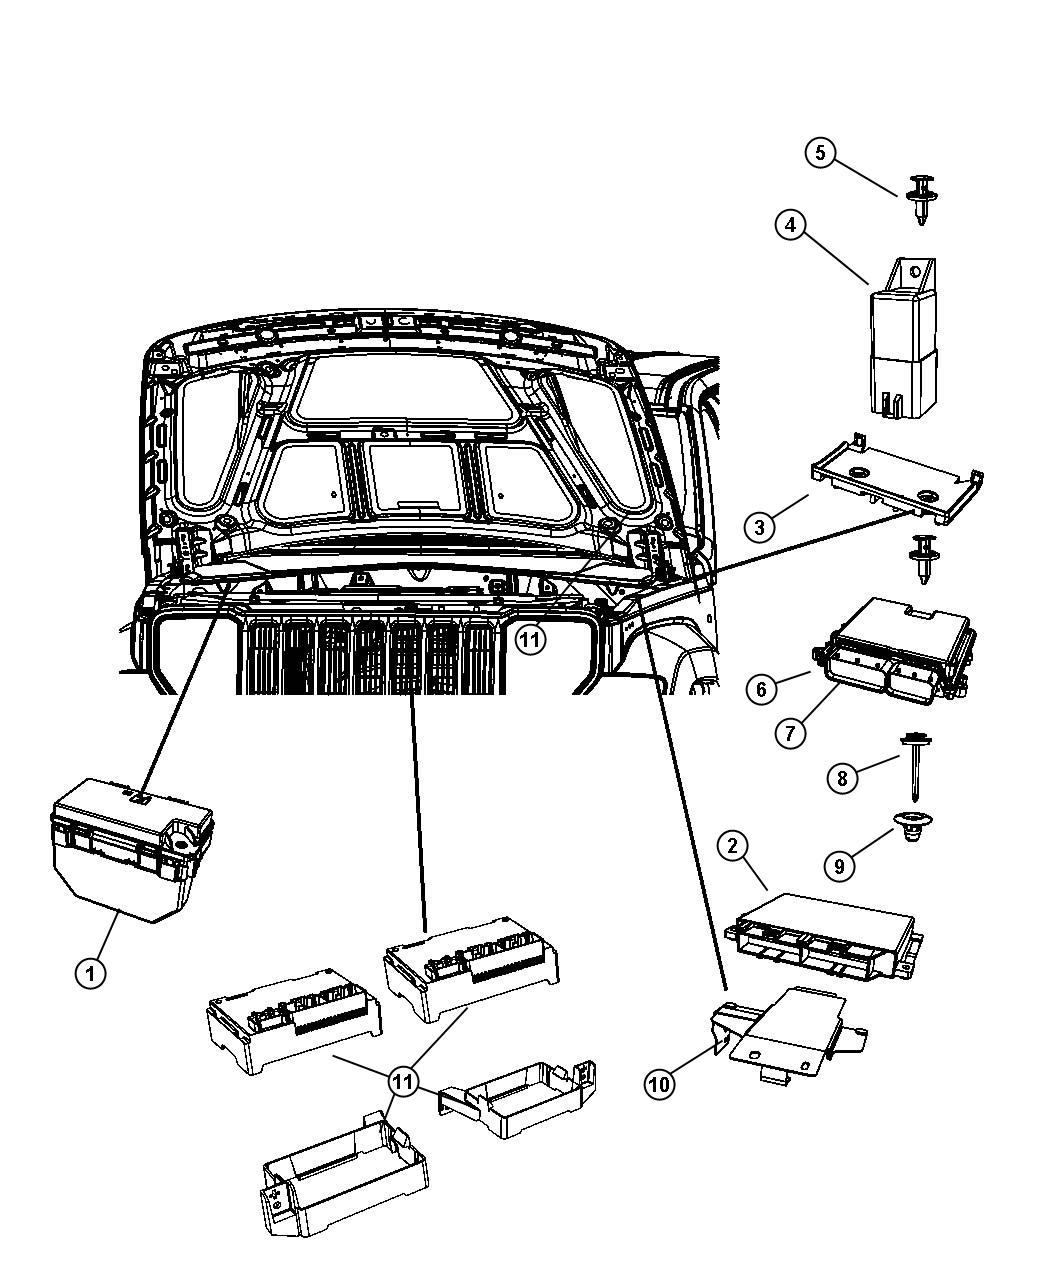 2010 jeep wrangler wiring diagrams r6029522ab - jeep module. transfer case control ...